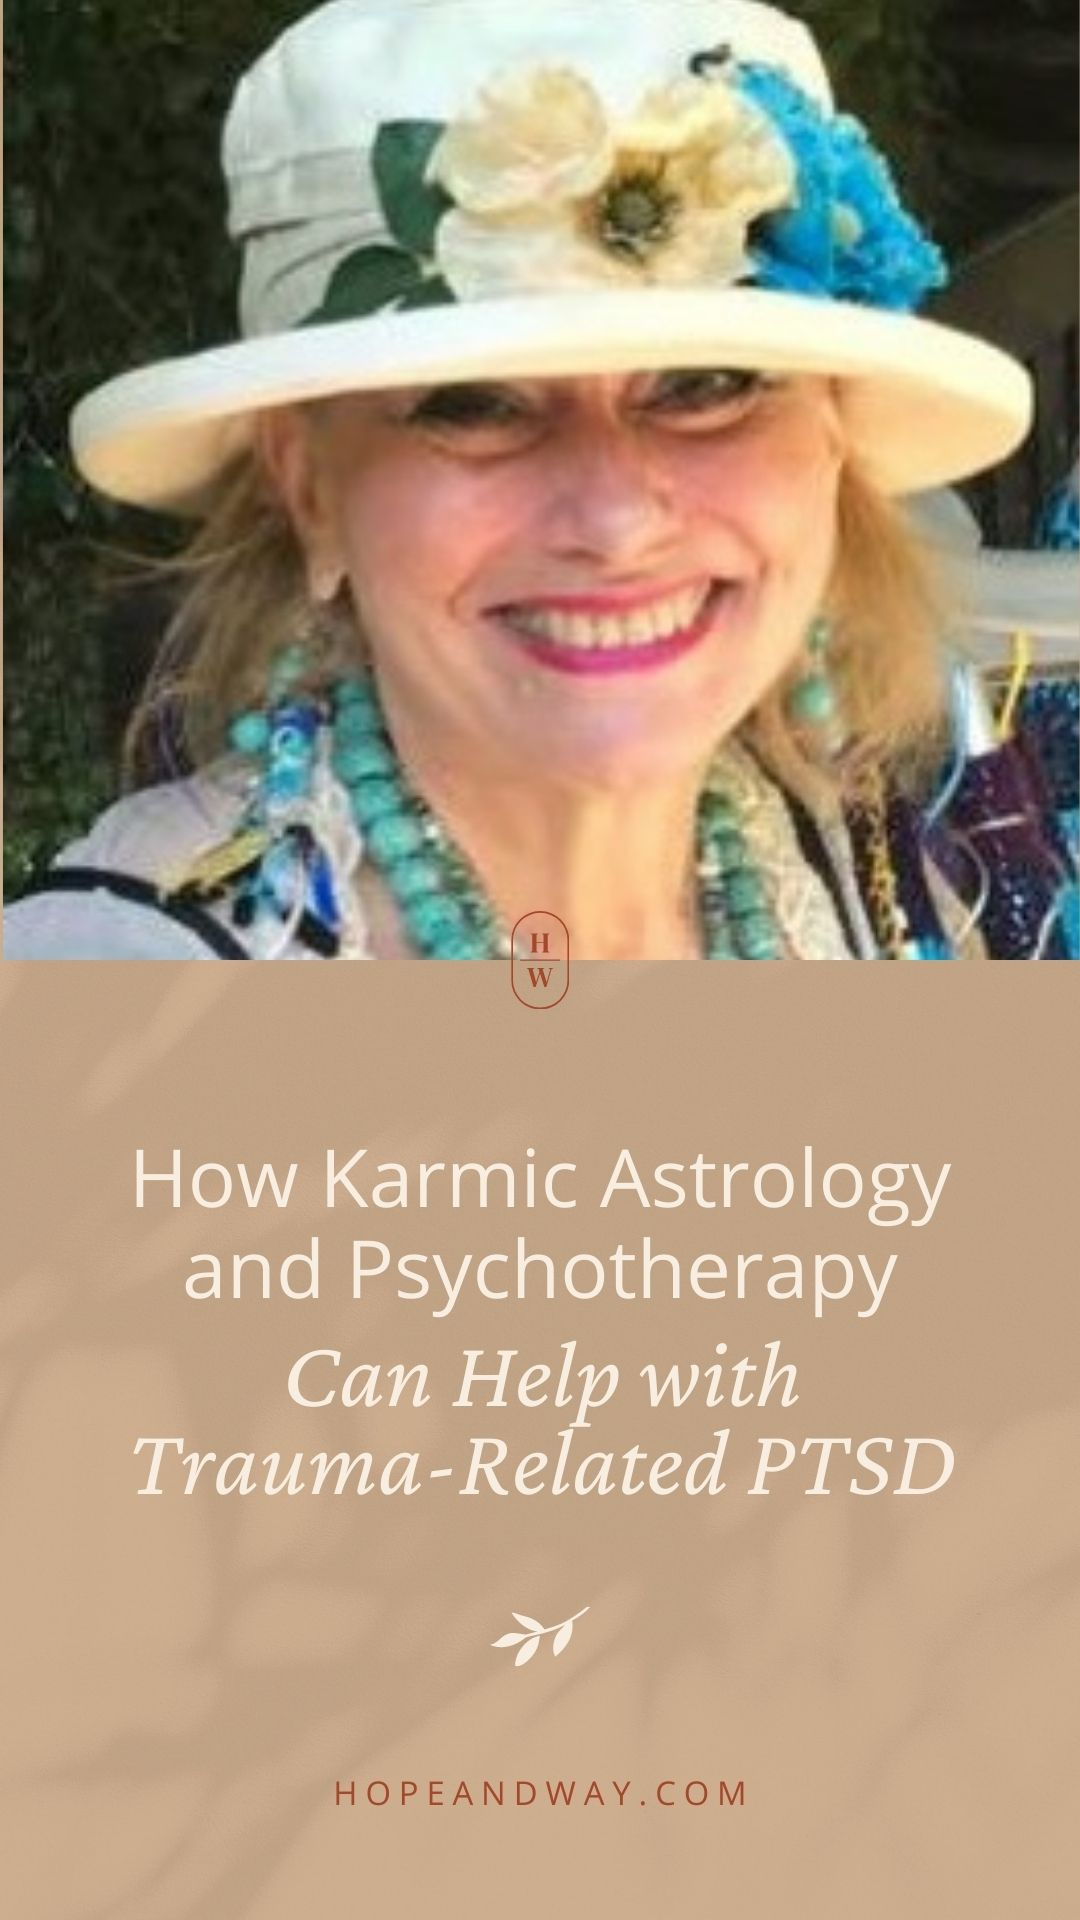 How Karmic Astrology and Psychotherapy Can Help with Trauma-Related PTSD - Interview with Georgina Sirett-Armstrong-Smith